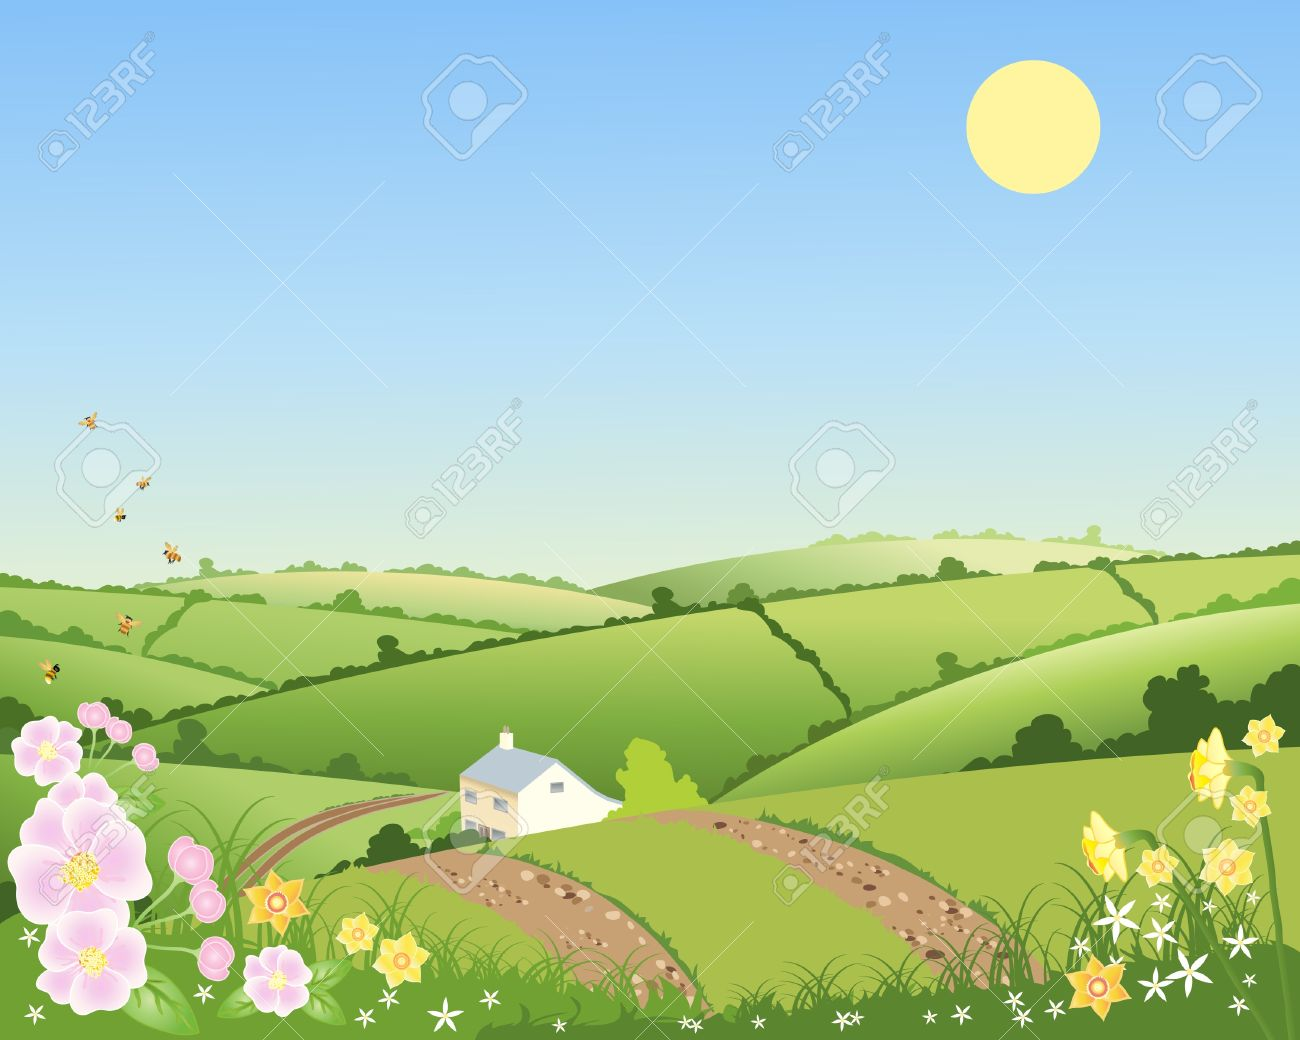 Country clipart landscape – Landscape Landscape Hill Download